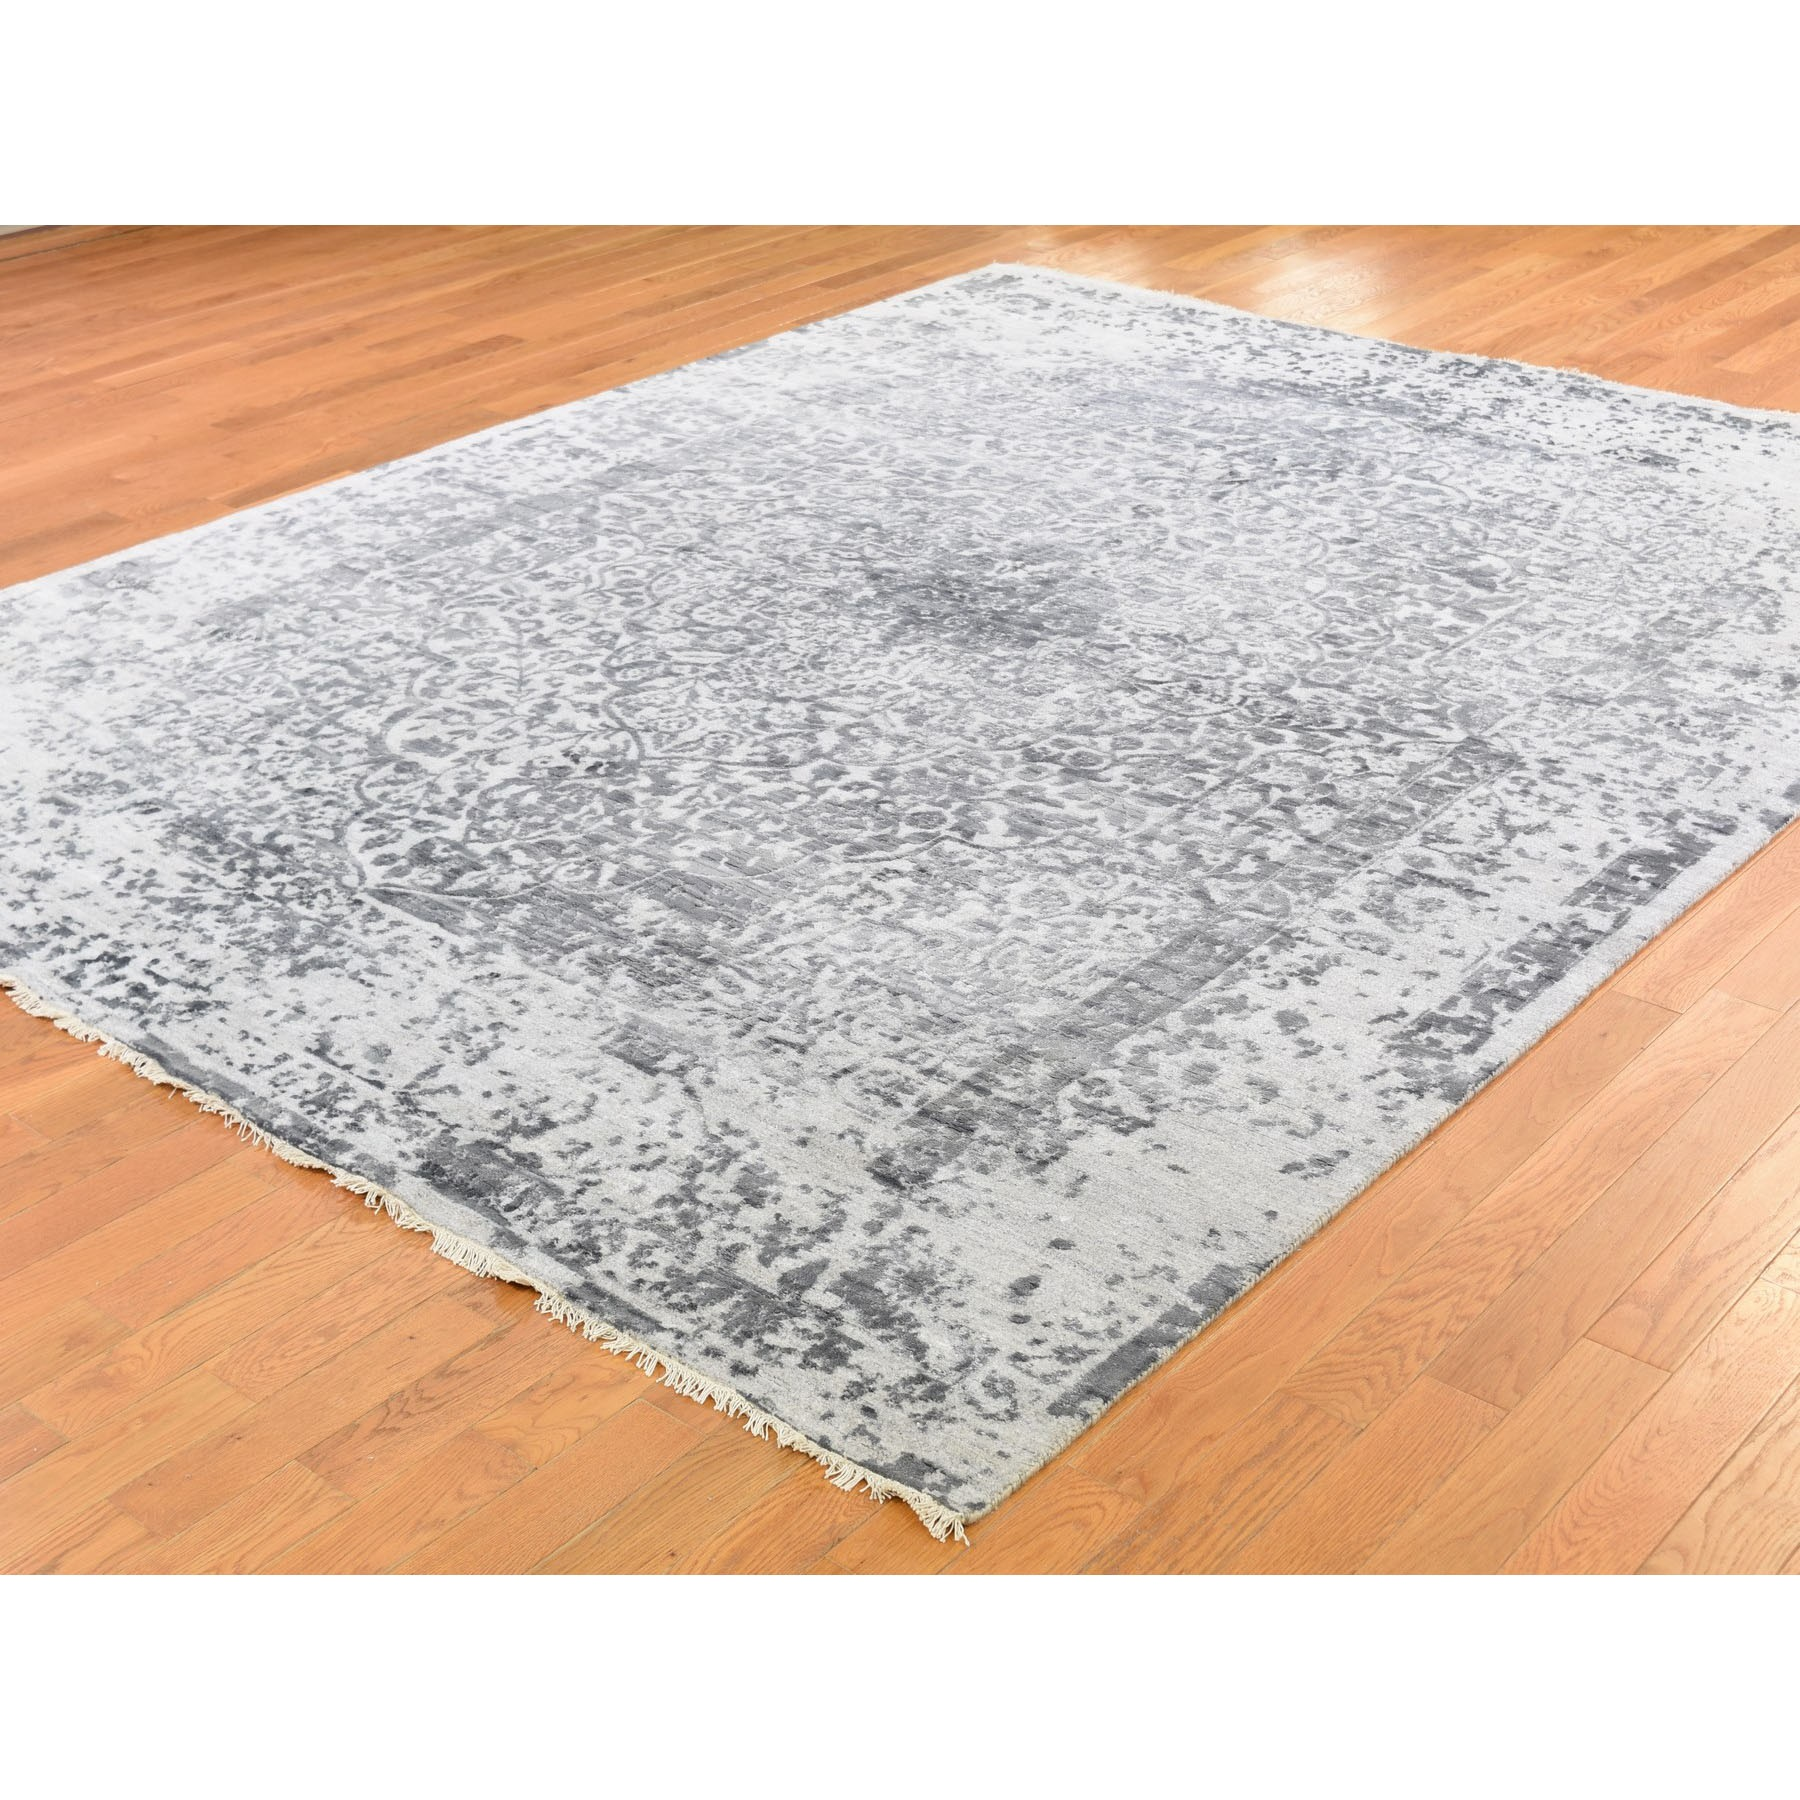 8'x10' Silver-Dark Gray Erased Persian Design Wool and Pure Silk Hand Knotted Oriental Rug